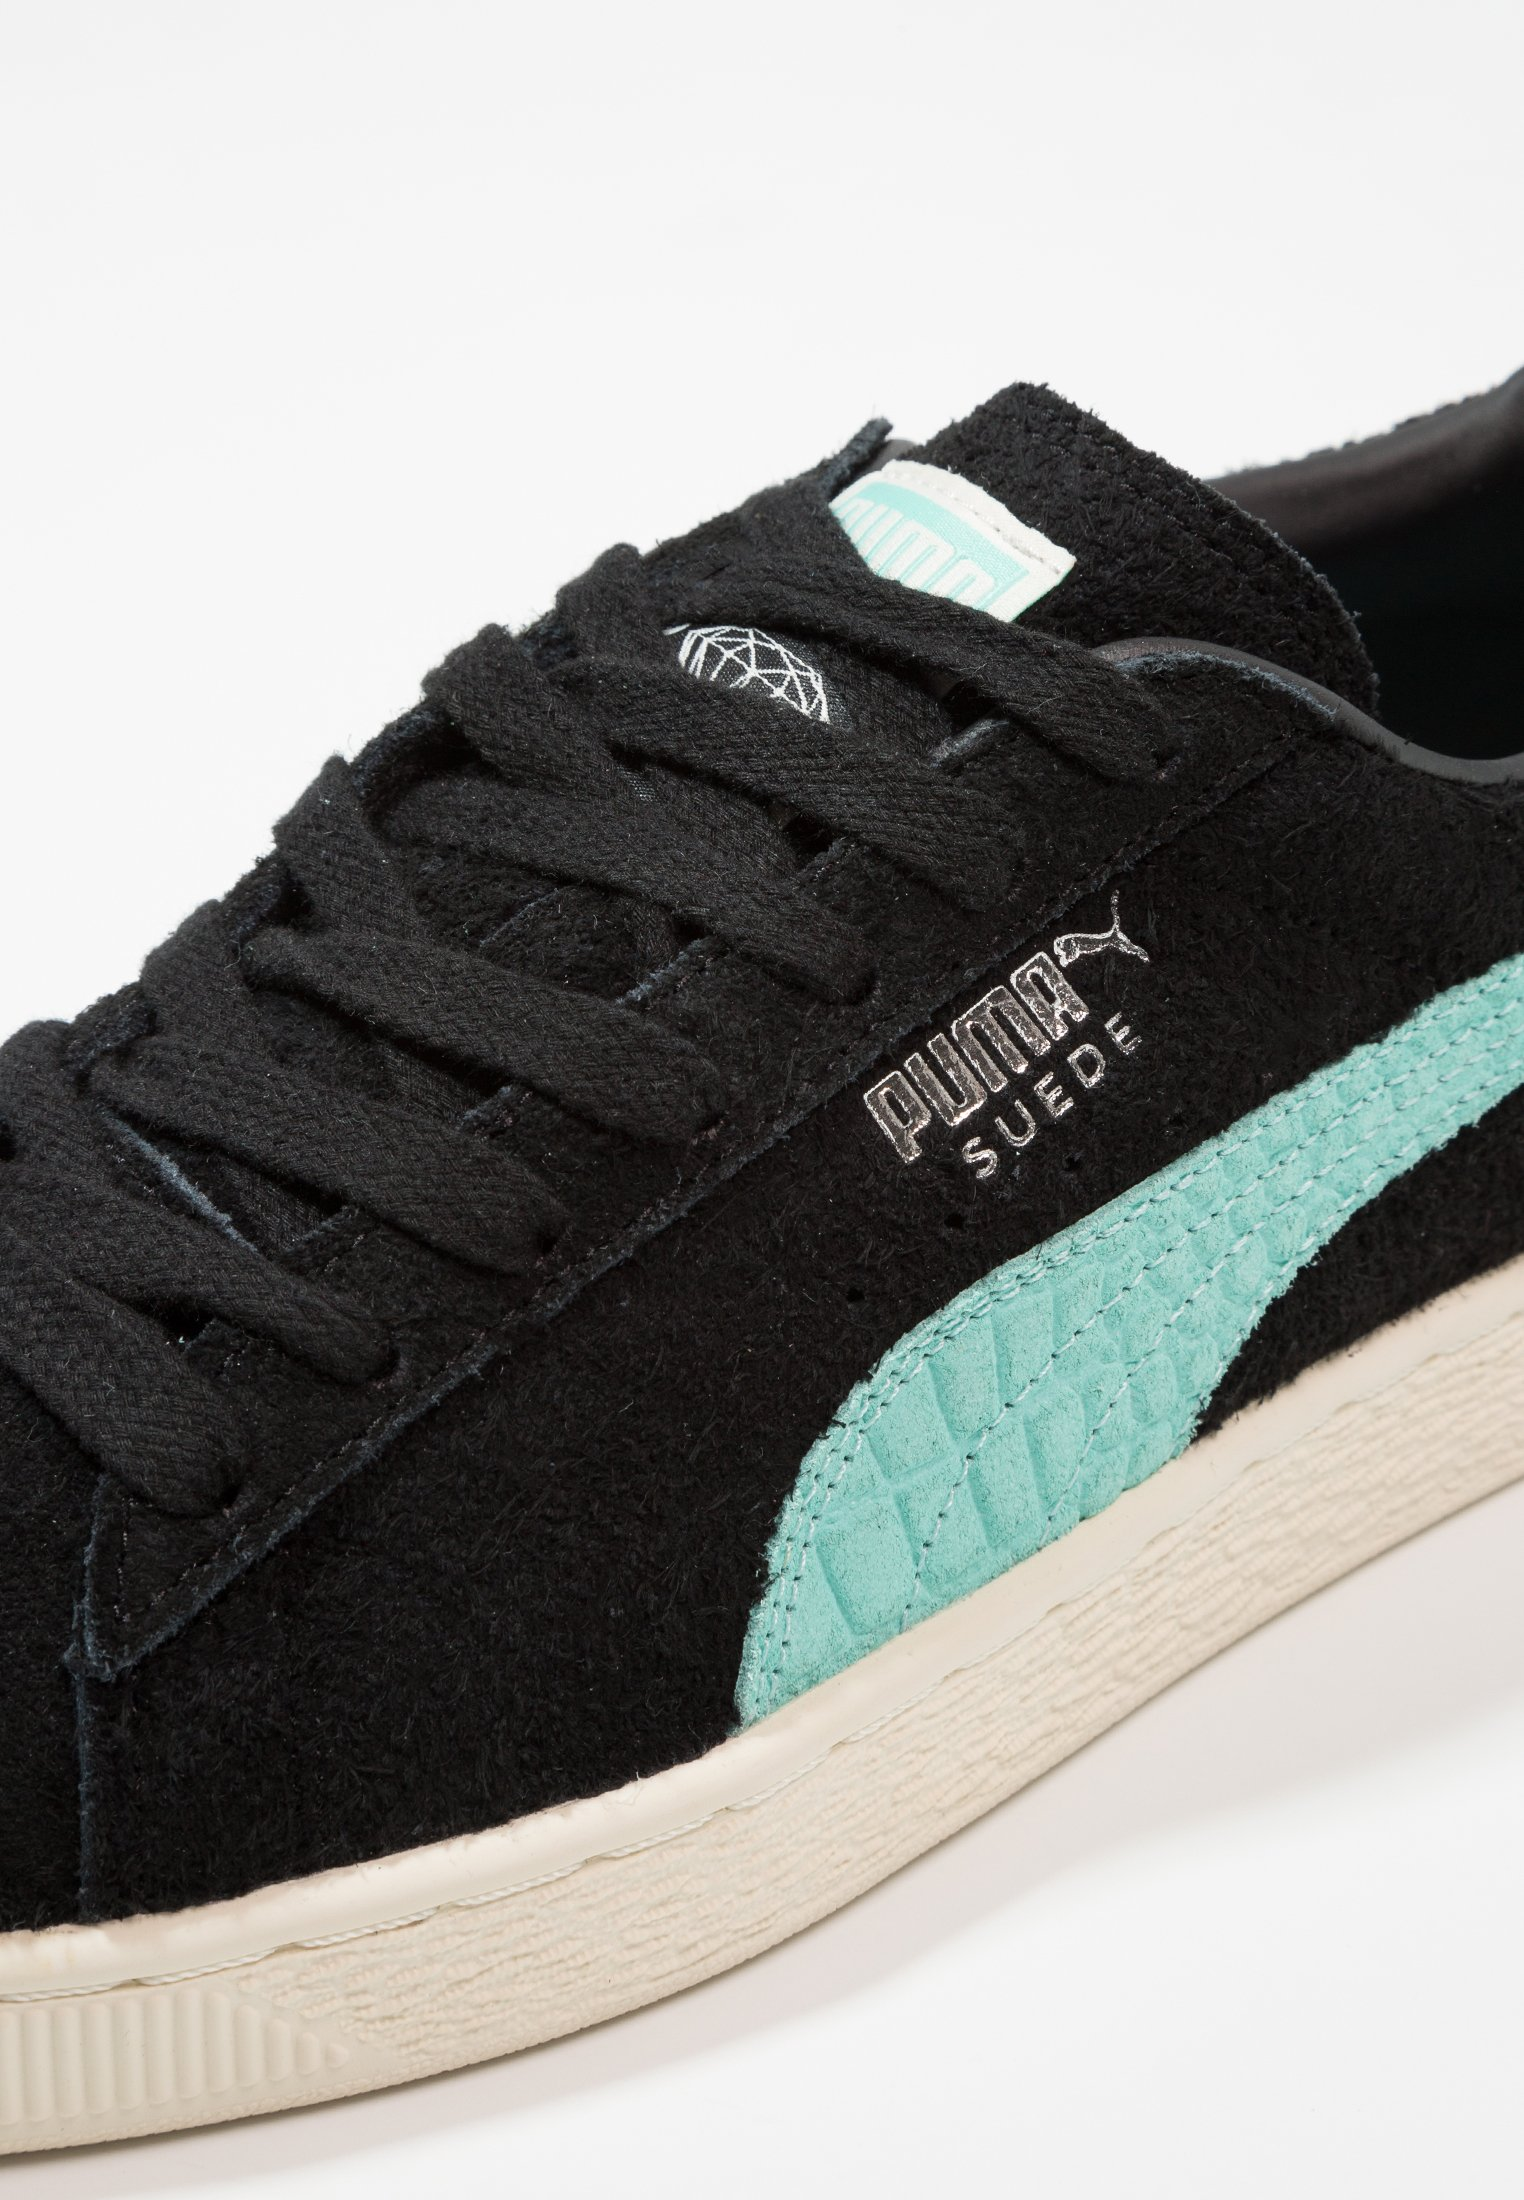 puma x DIAMOND Suede Puma Black Diamond Blue bij